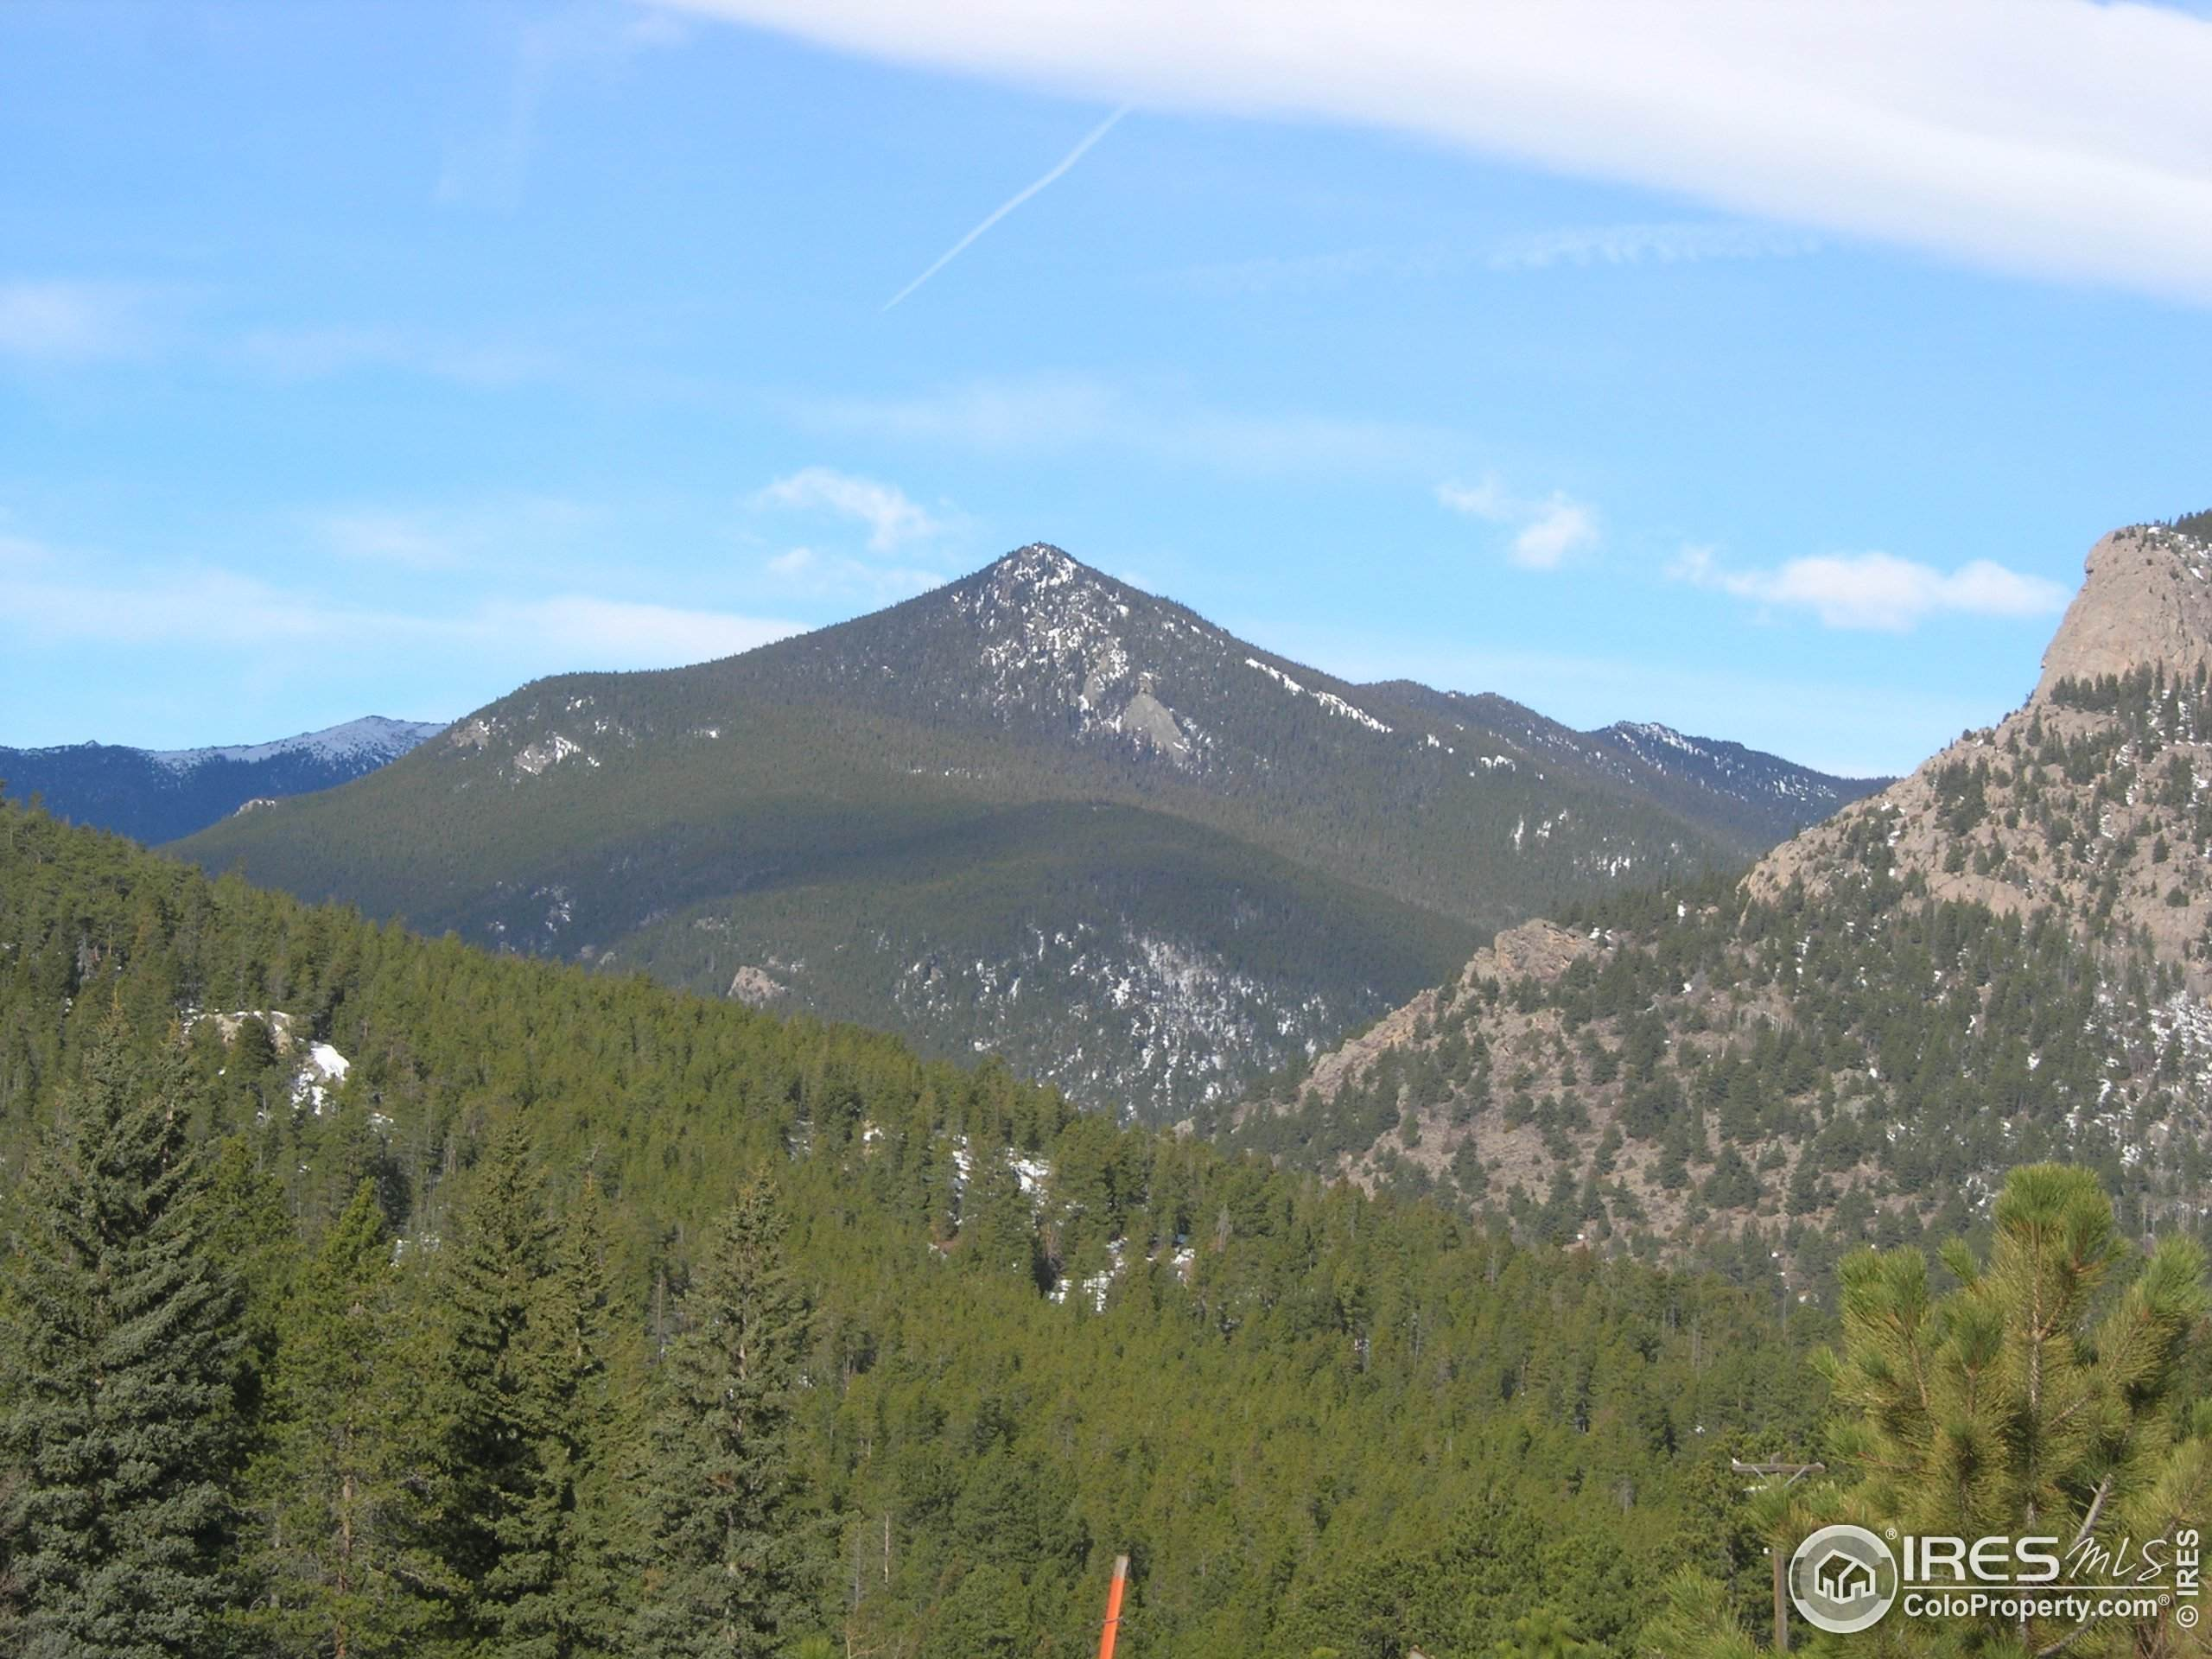 5750 W 20th St #1, Greeley, CO 80634 (MLS #831792) :: Downtown Real Estate Partners